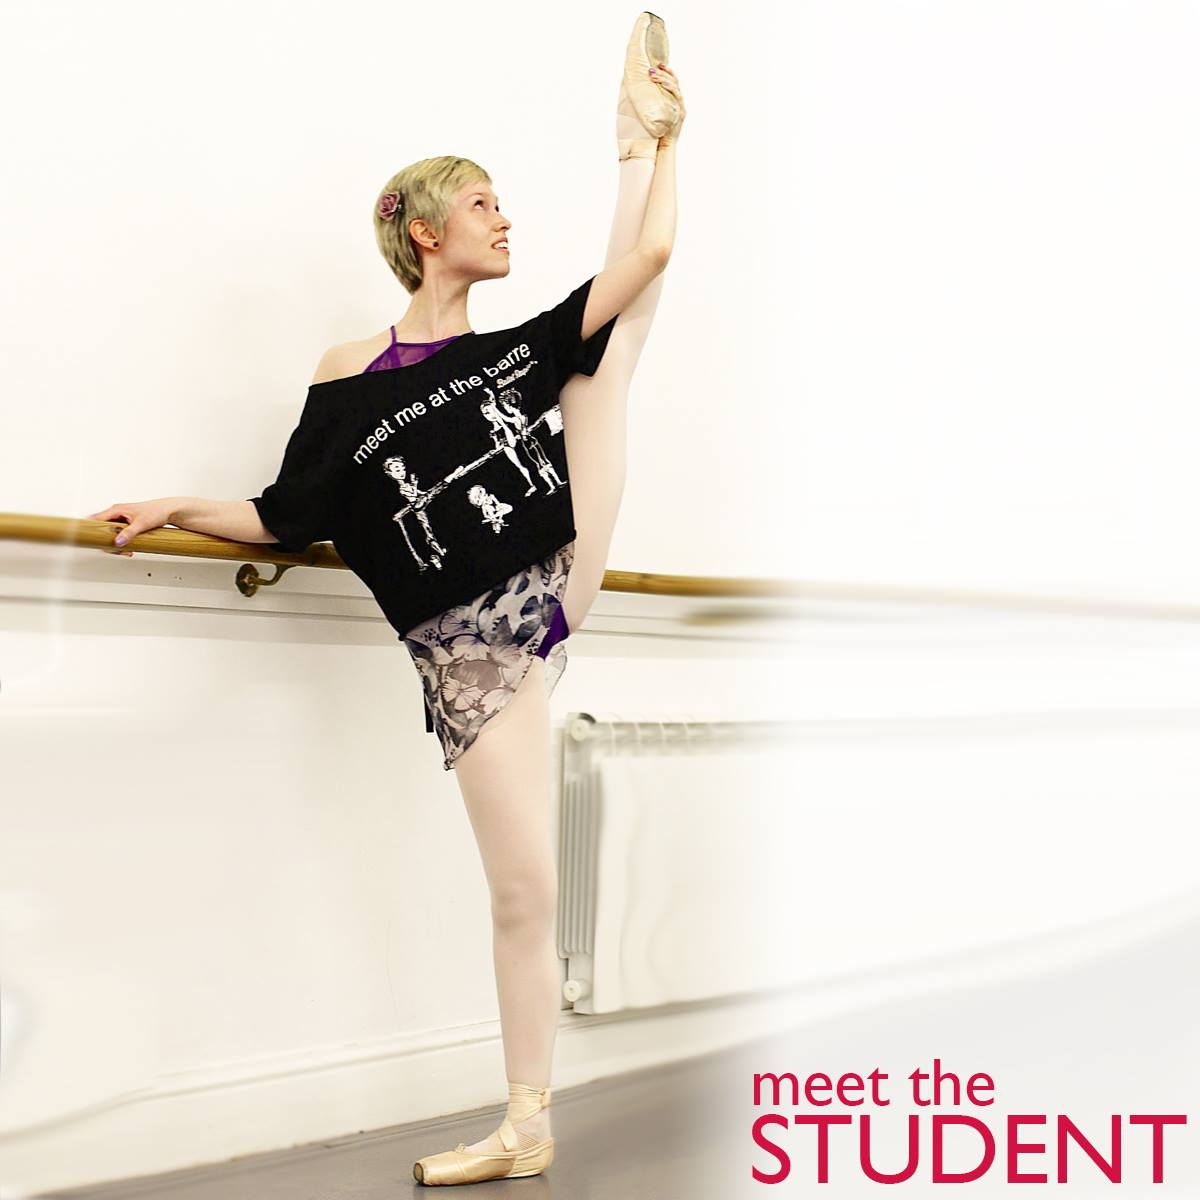 Georgina Butler. Meet the Student. Royal Academy of Dance social media campaign. BA (Hons) Dance Education.